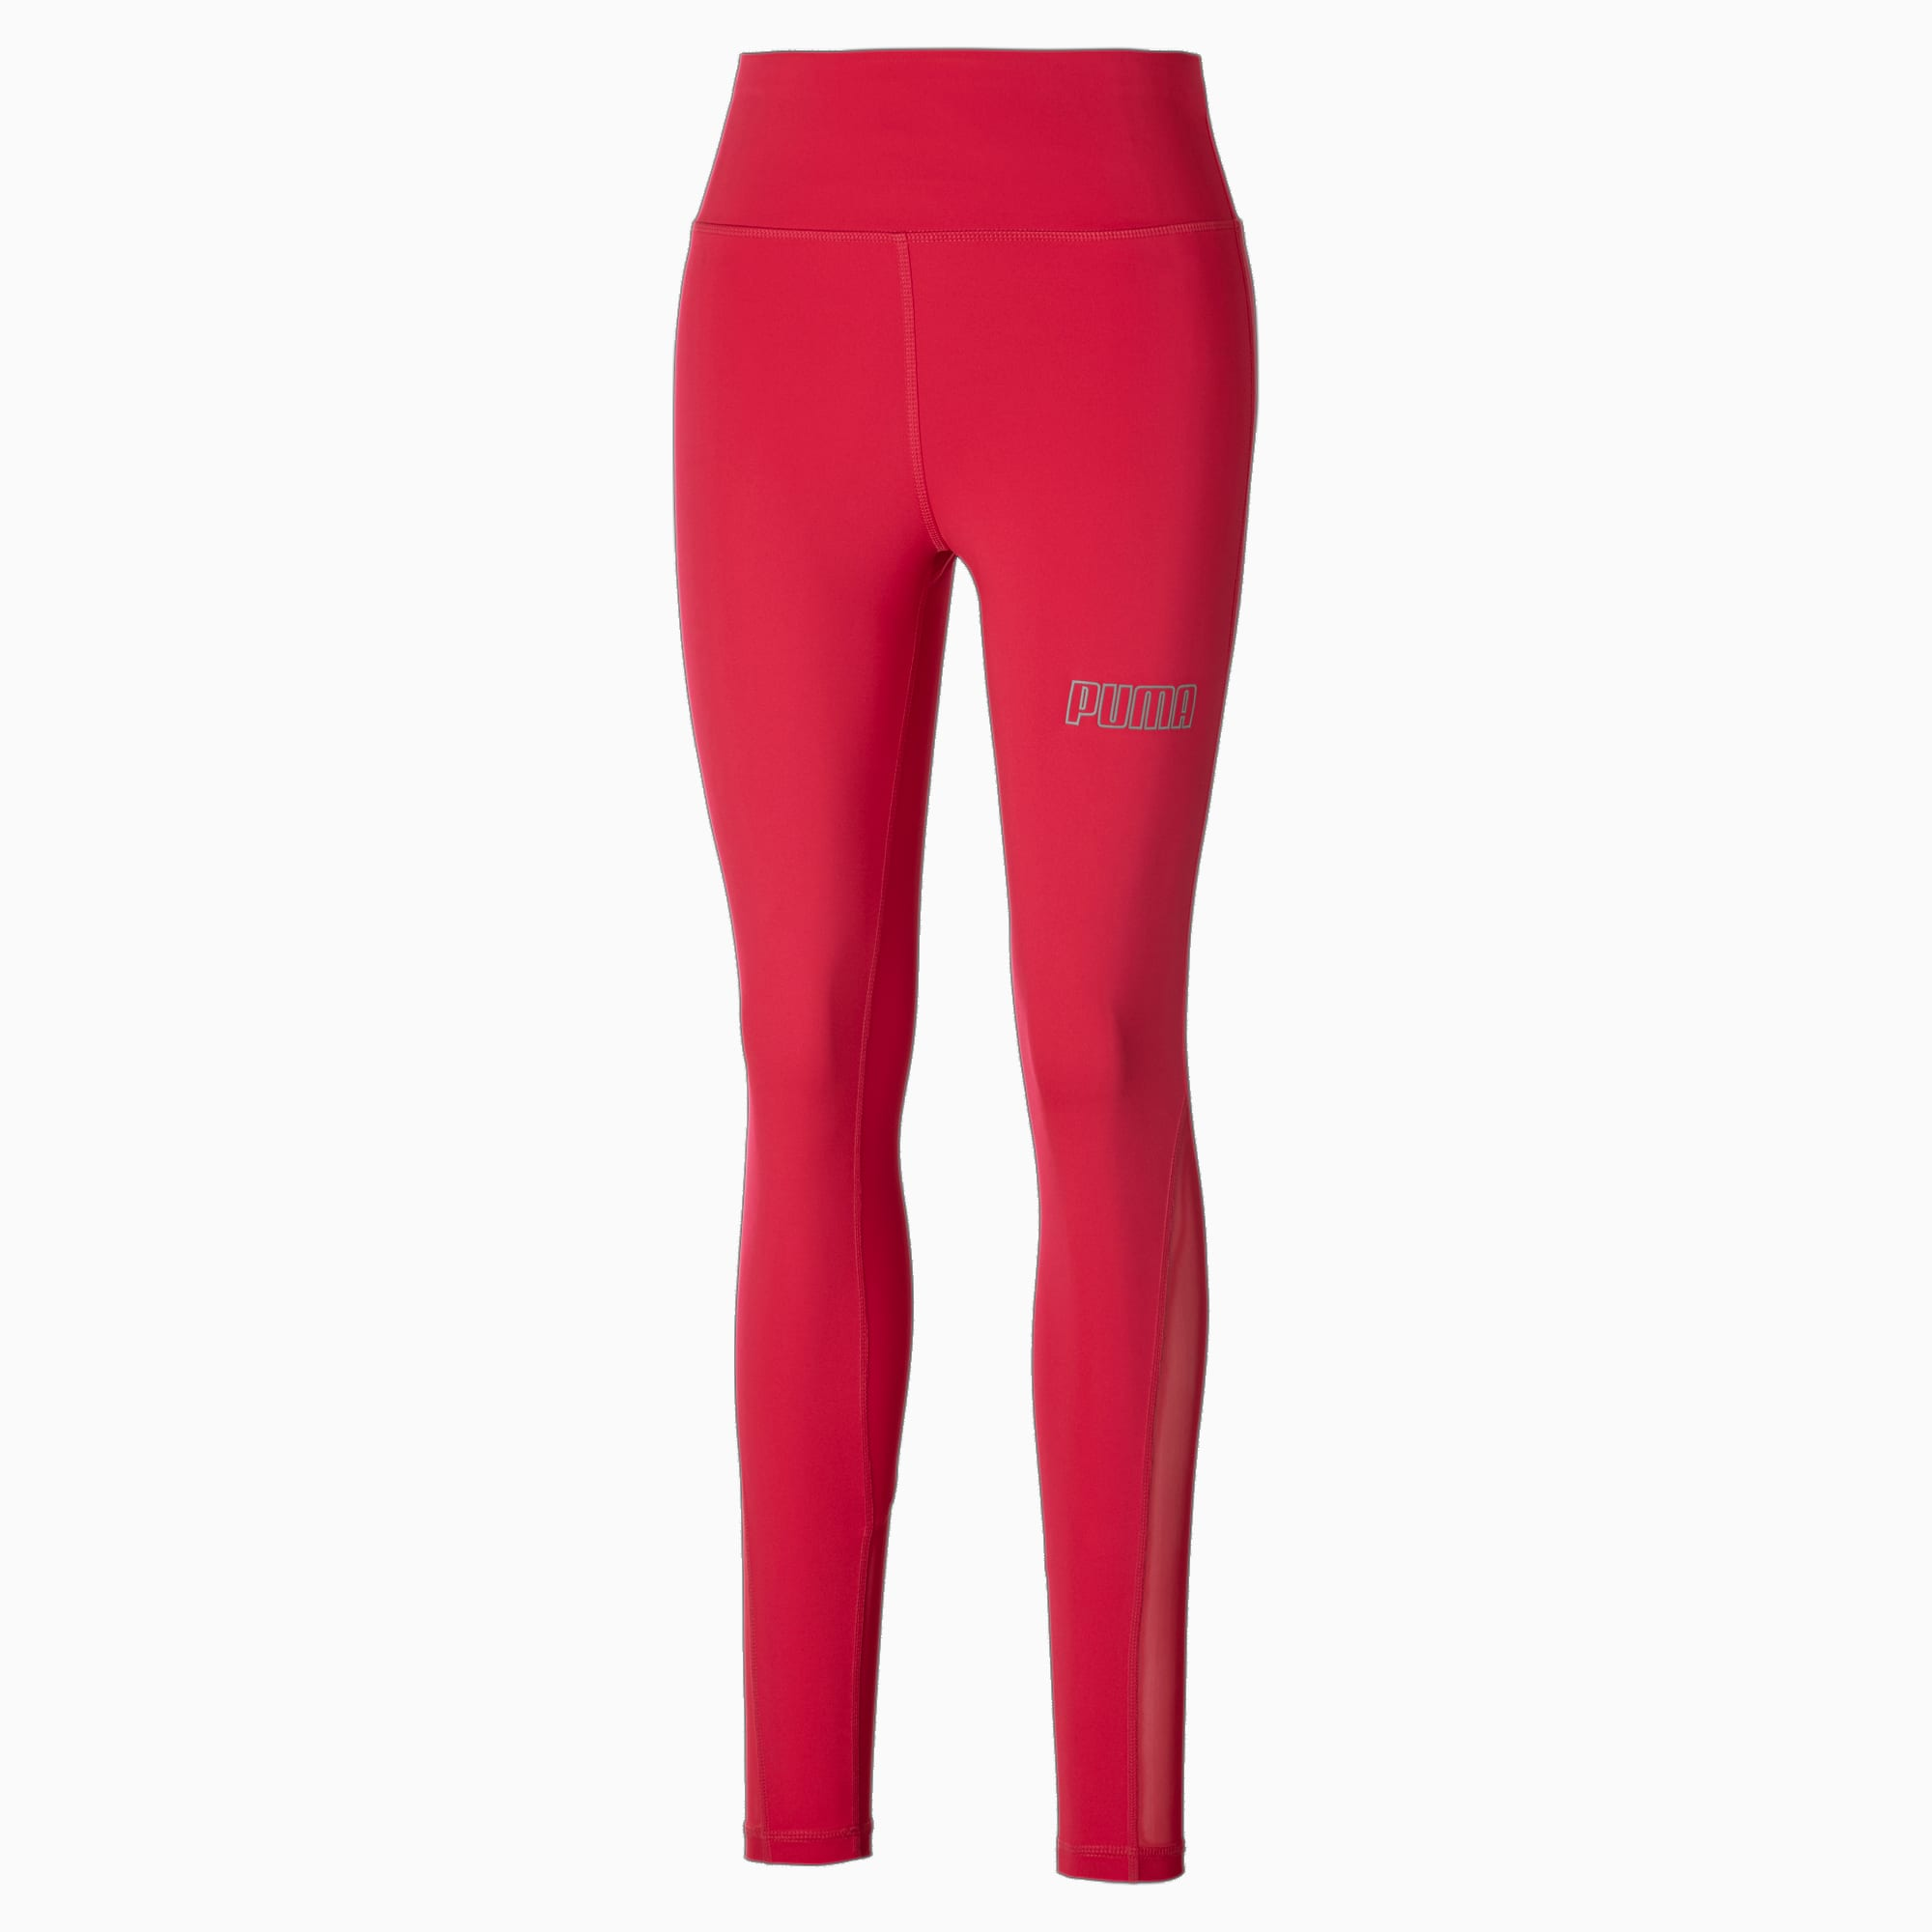 puma -  Active Damen High Waist Poly Leggings | Mit Aucun | Rosa | Größe: XL